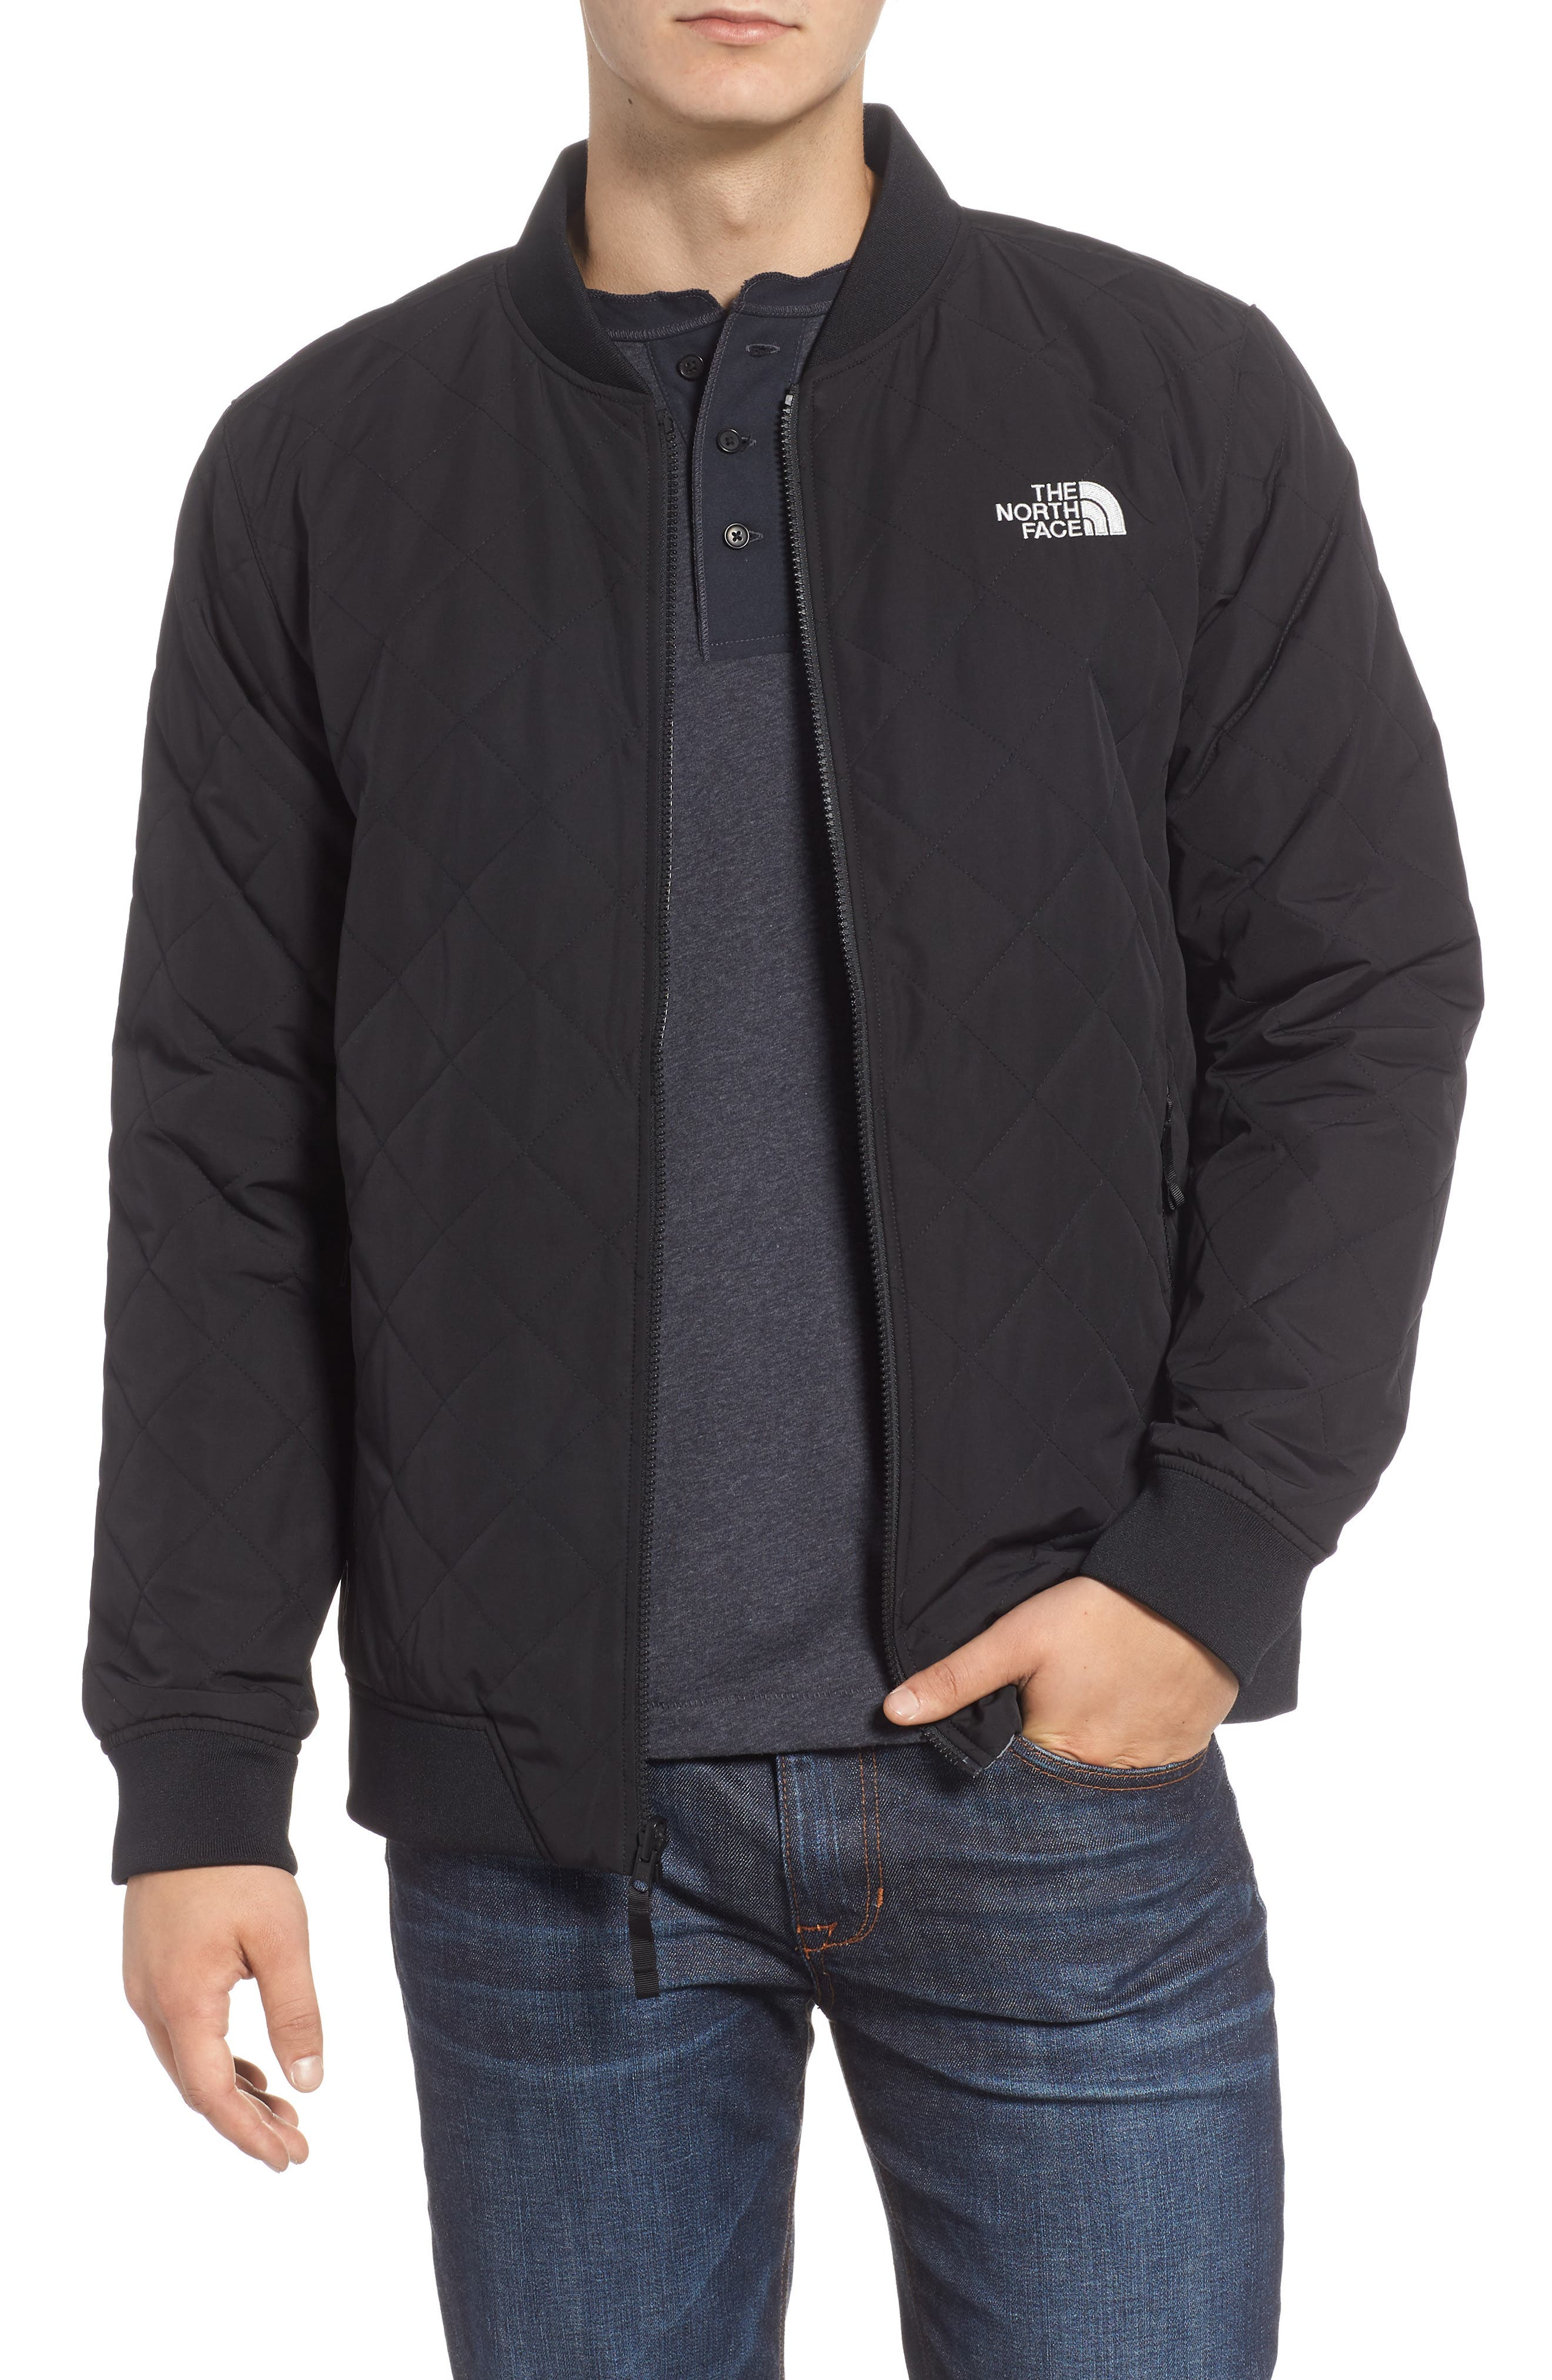 THE NORTH FACE Jester Reversible Bomber Jacket, Main, color, 001